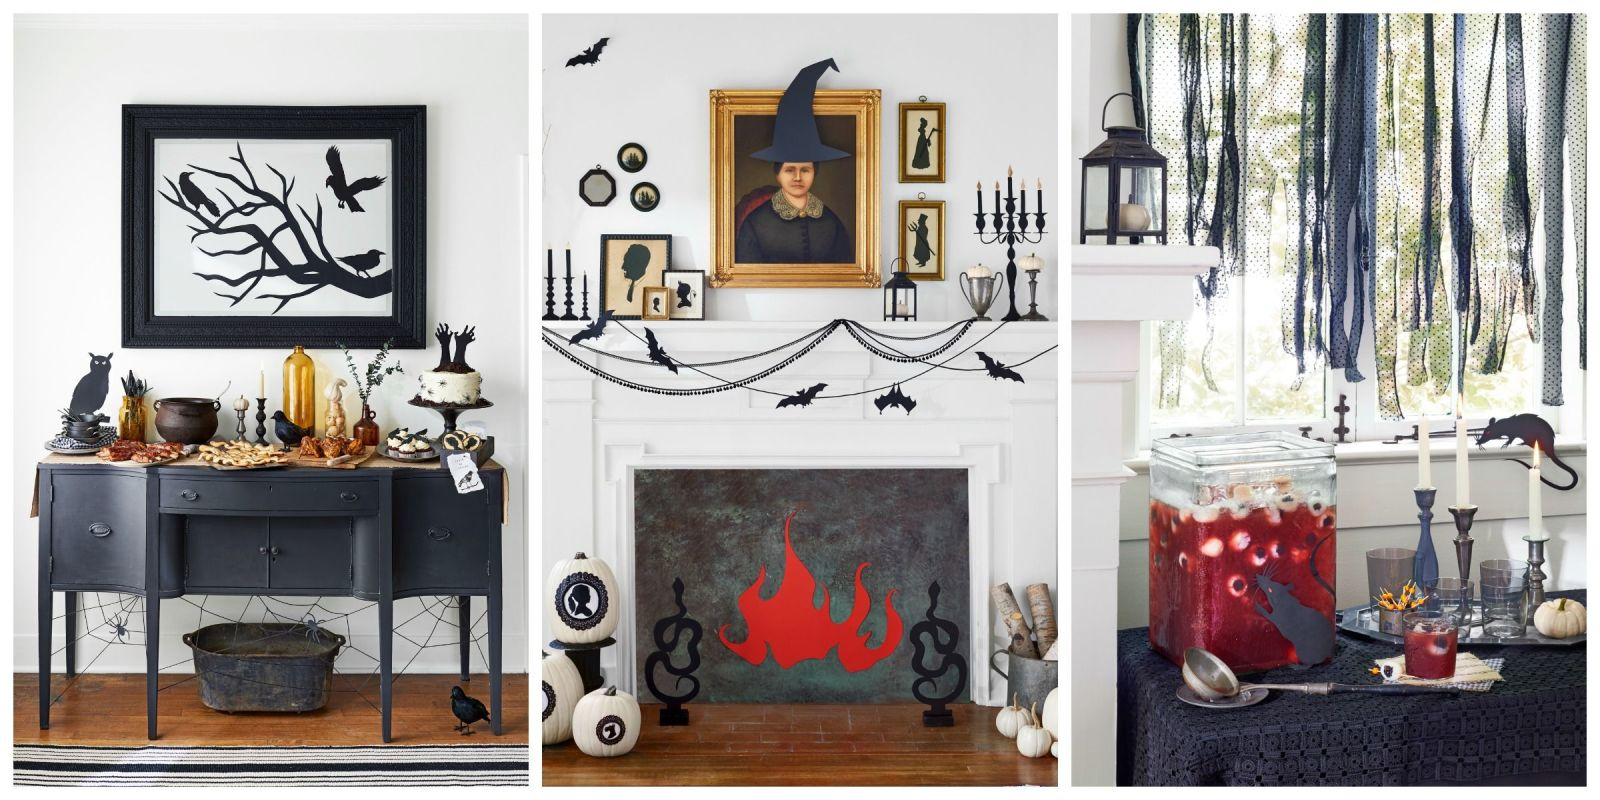 56 fun halloween party decorating ideas spooky halloween party decor - Halloween Theme Party Ideas